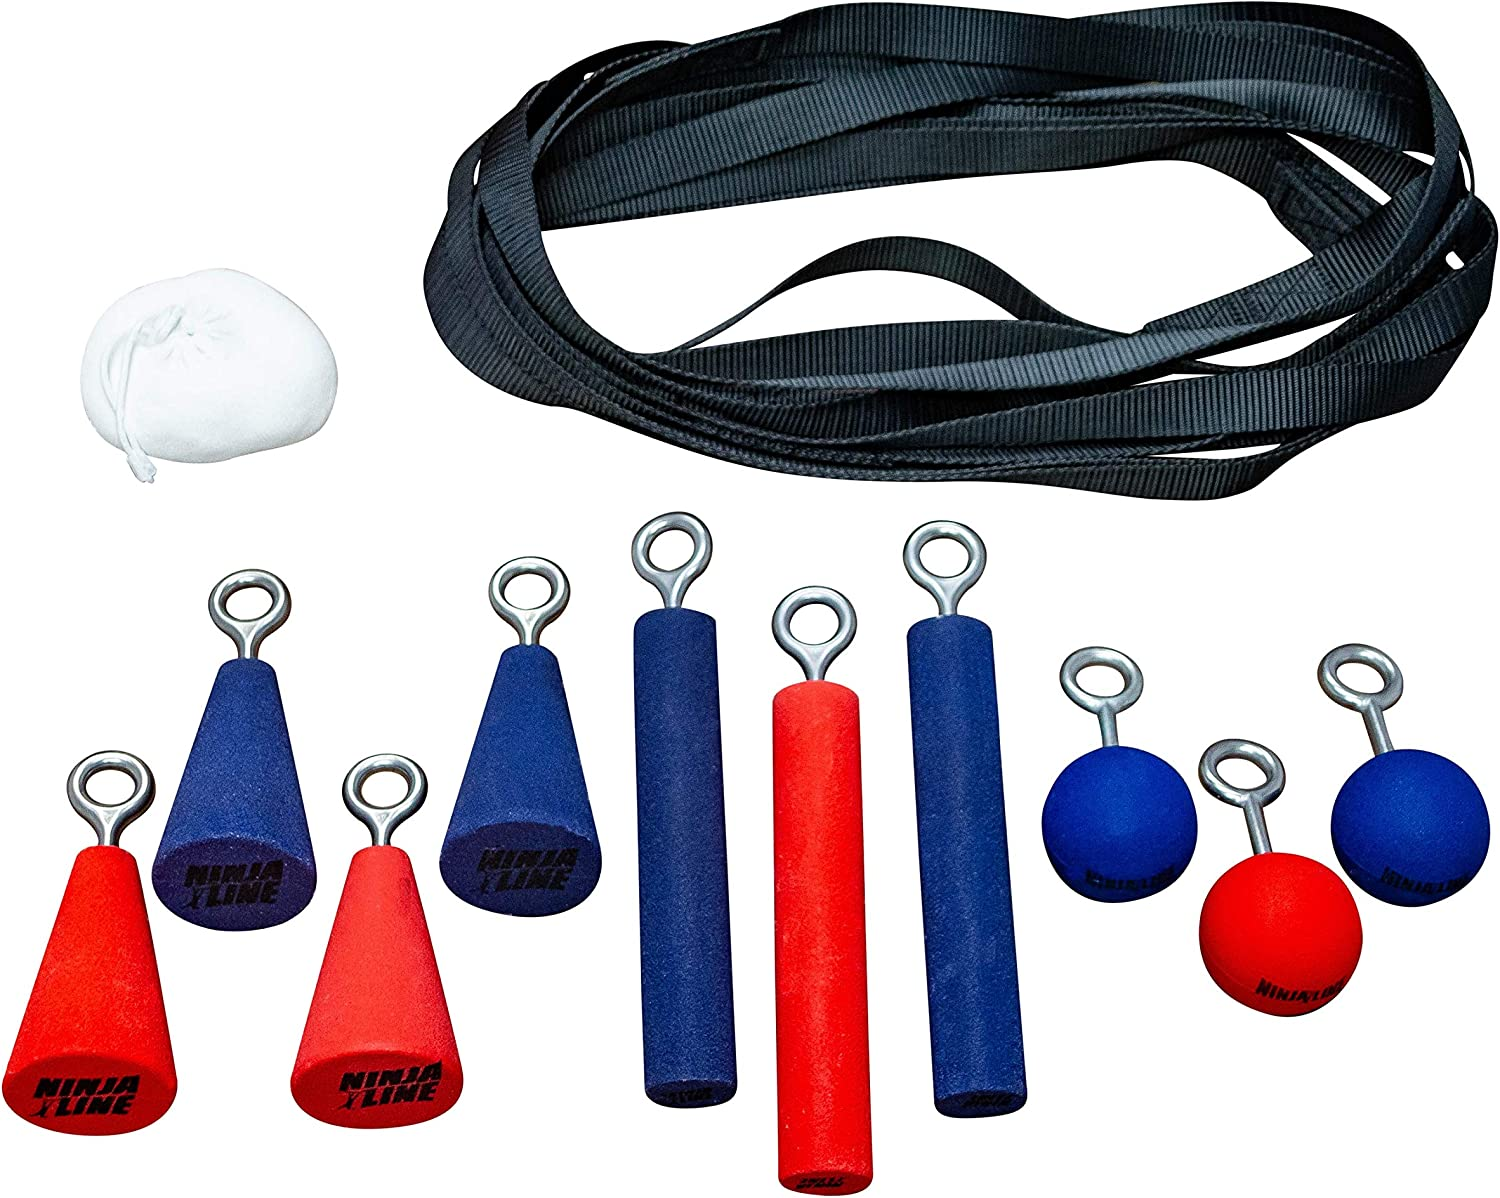 Slackers Pro Holds 10pc. for Grip Strength Training, Crossfit, American Ninja Warrior Training